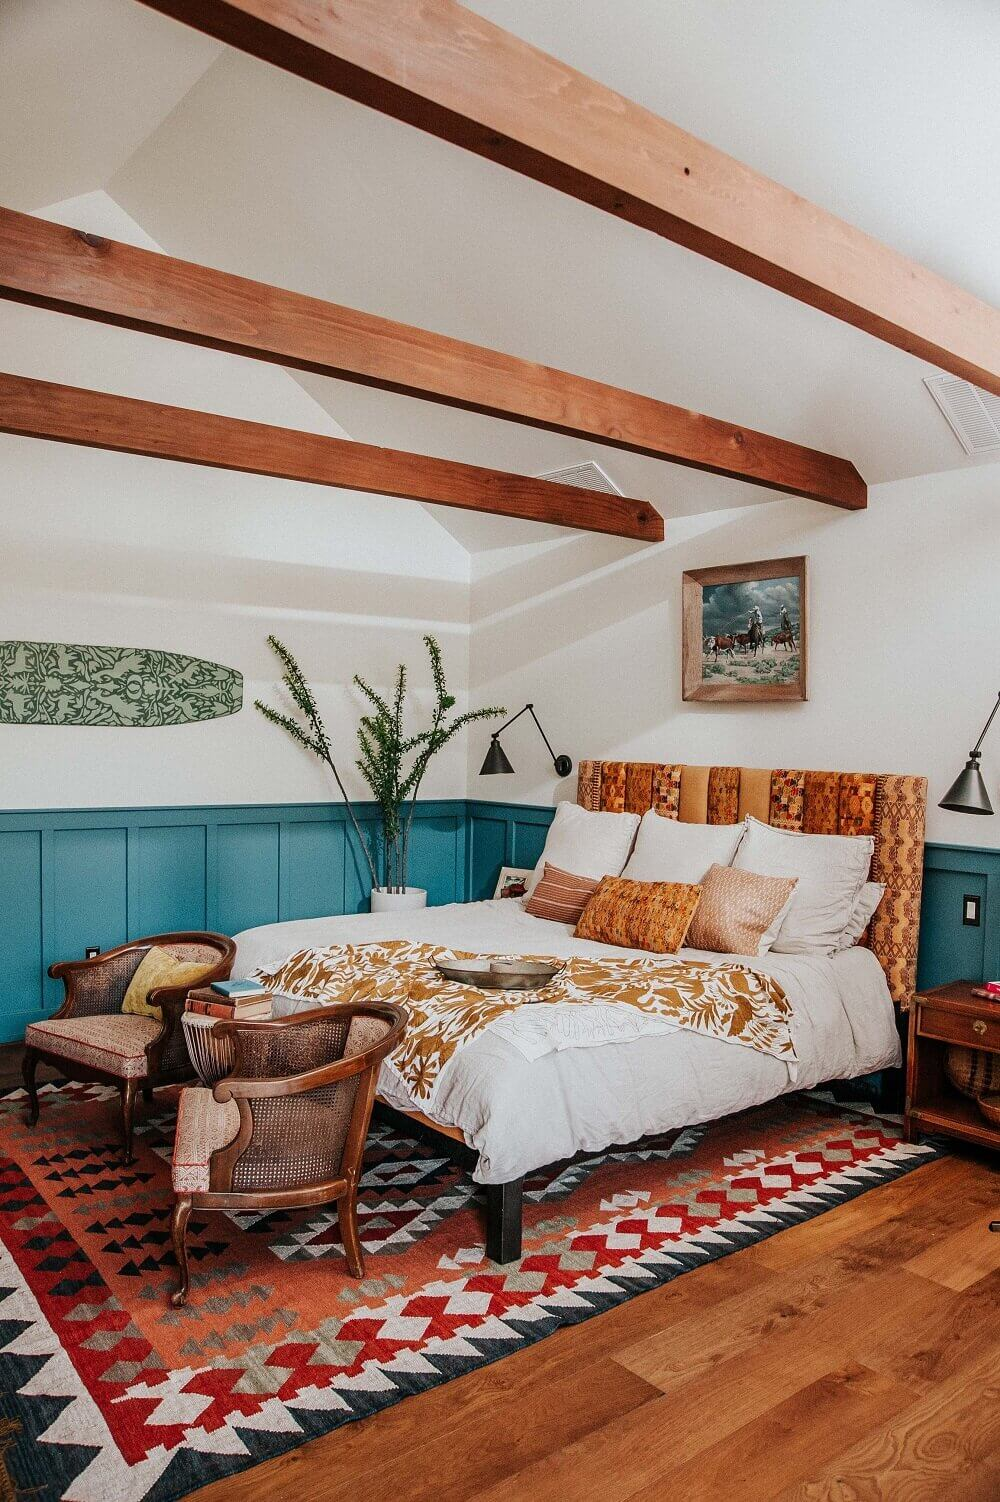 A Vibrant Guesthouse With Vintage Decor And A Copper Kitchen